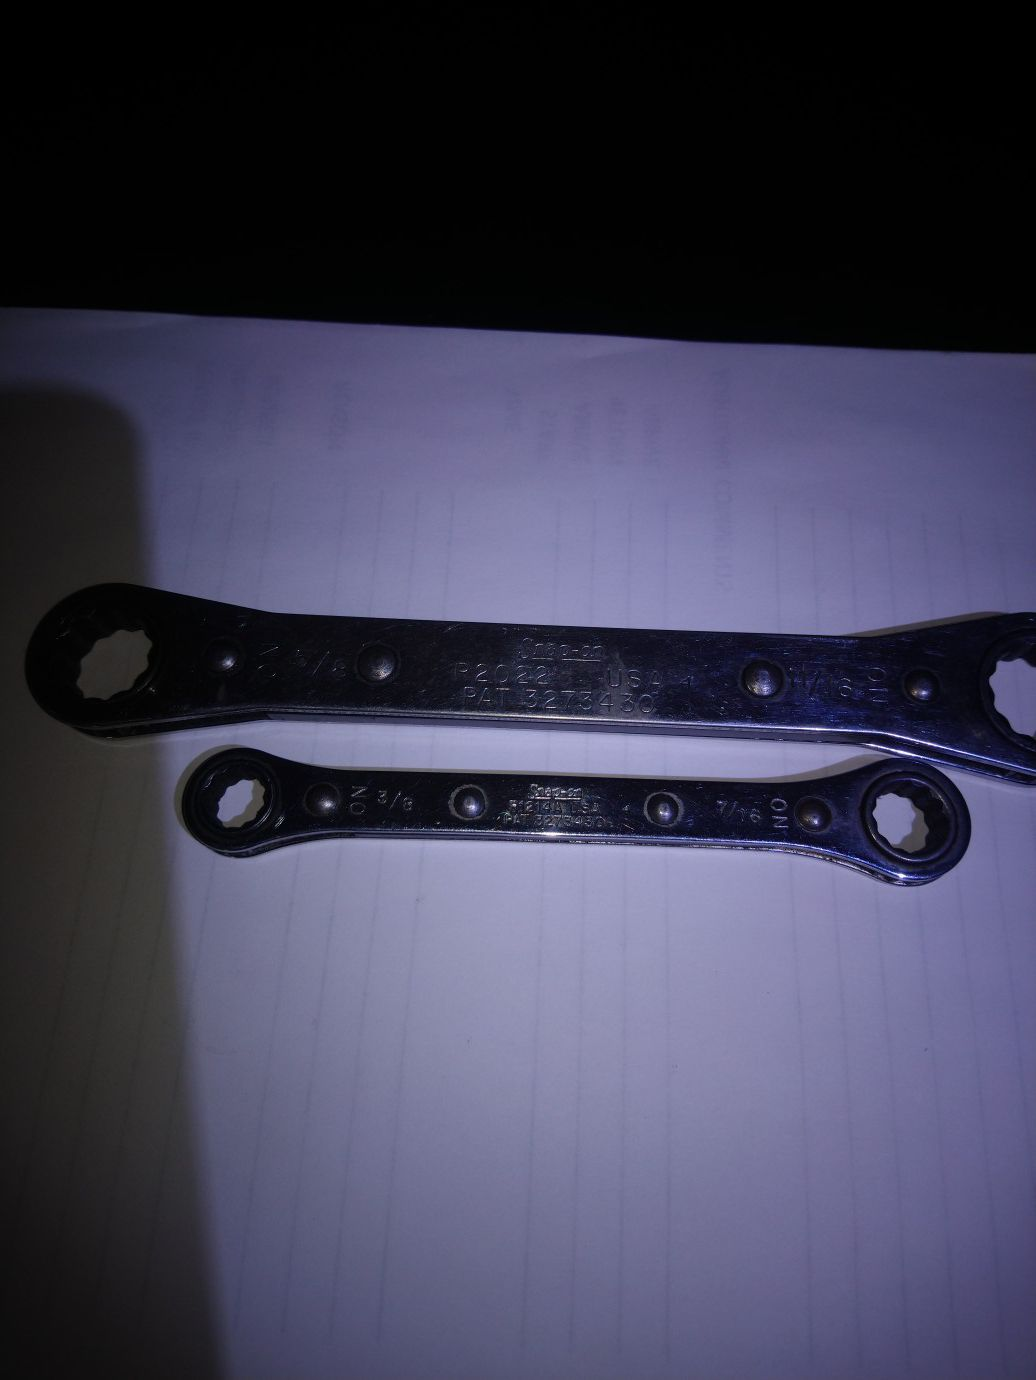 Snap on size 11/16 5/8 & 3/8 & 7/16